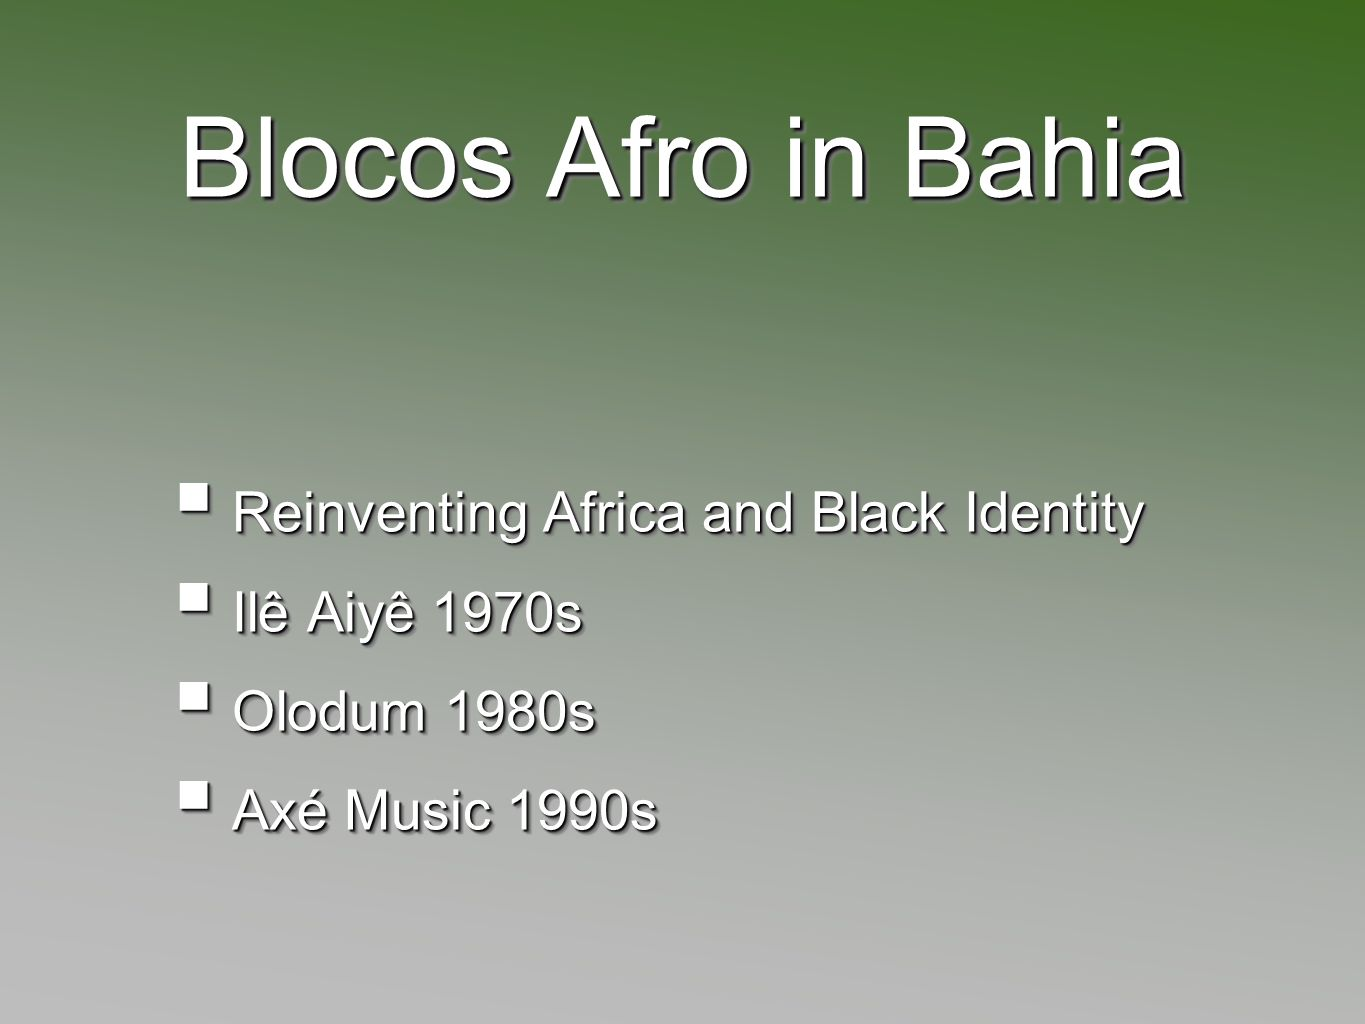 Blocos Afro in Bahia Reinventing Africa and Black Identity Reinventing Africa and Black Identity Ilê Aiyê 1970s Ilê Aiyê 1970s Olodum 1980s Olodum 198